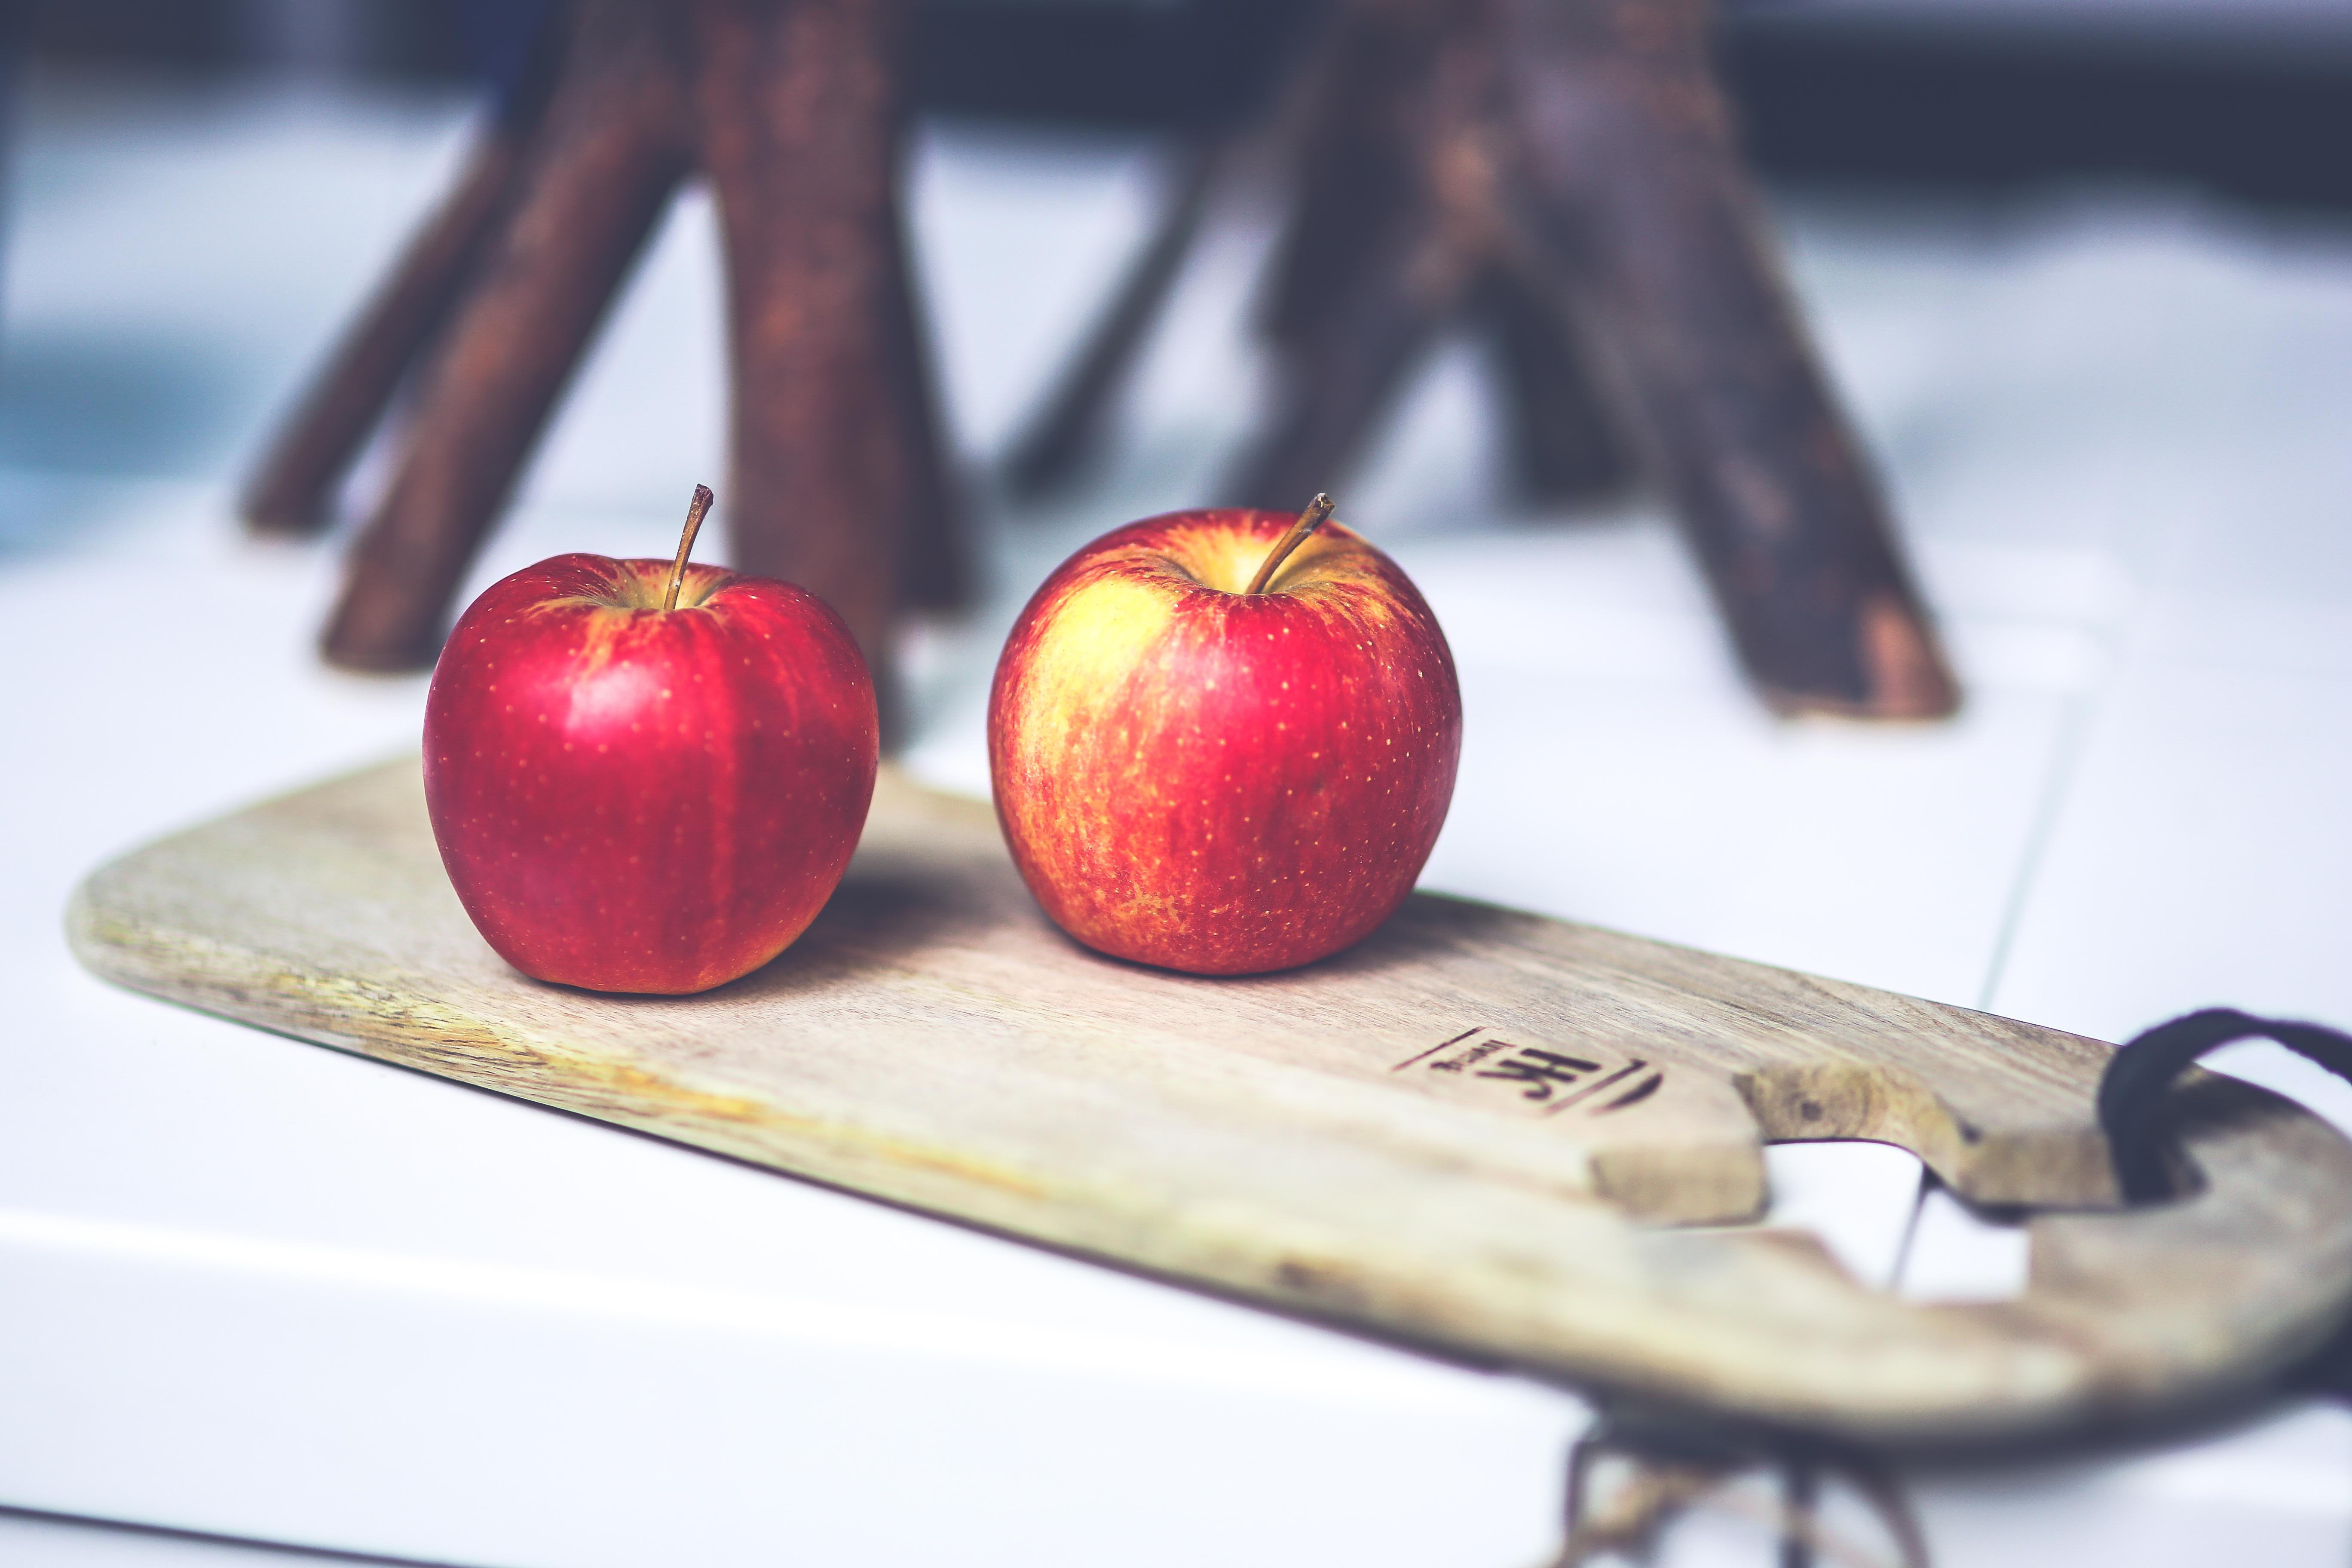 Apple Iphone X Wallpaper From Commercial Red Apple Fruit Photography 183 Free Stock Photo